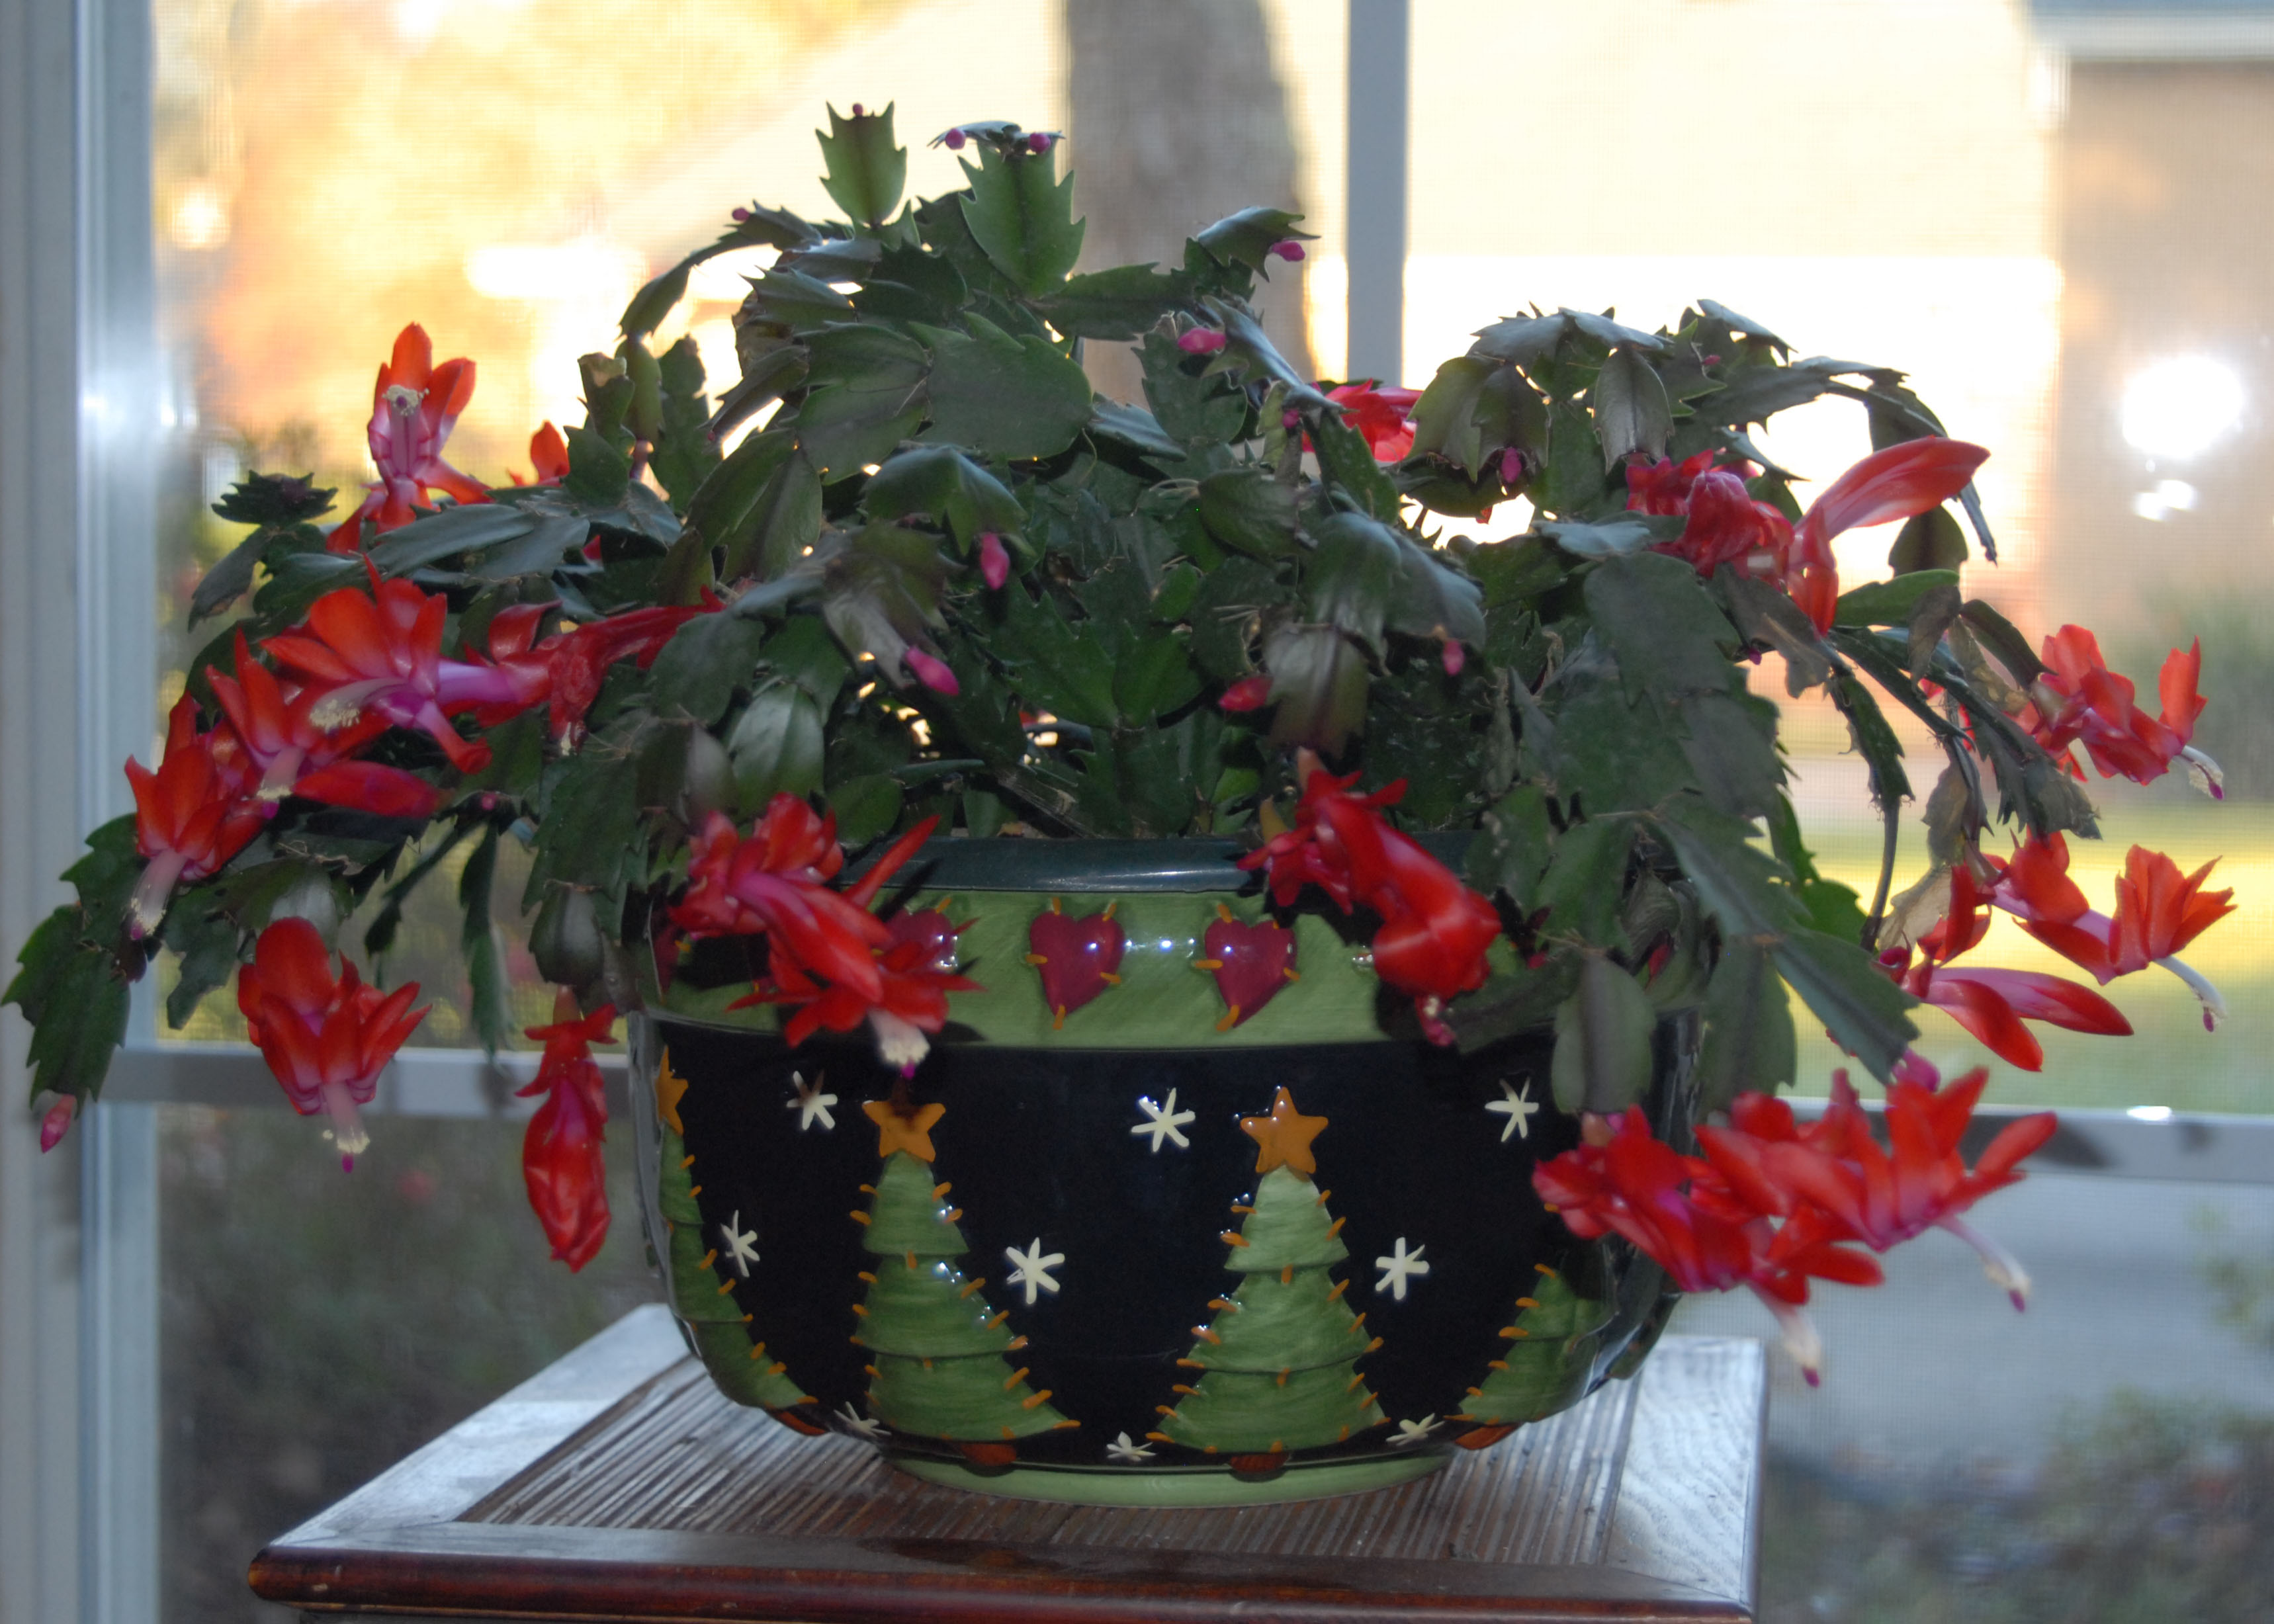 Take care of your holiday plants